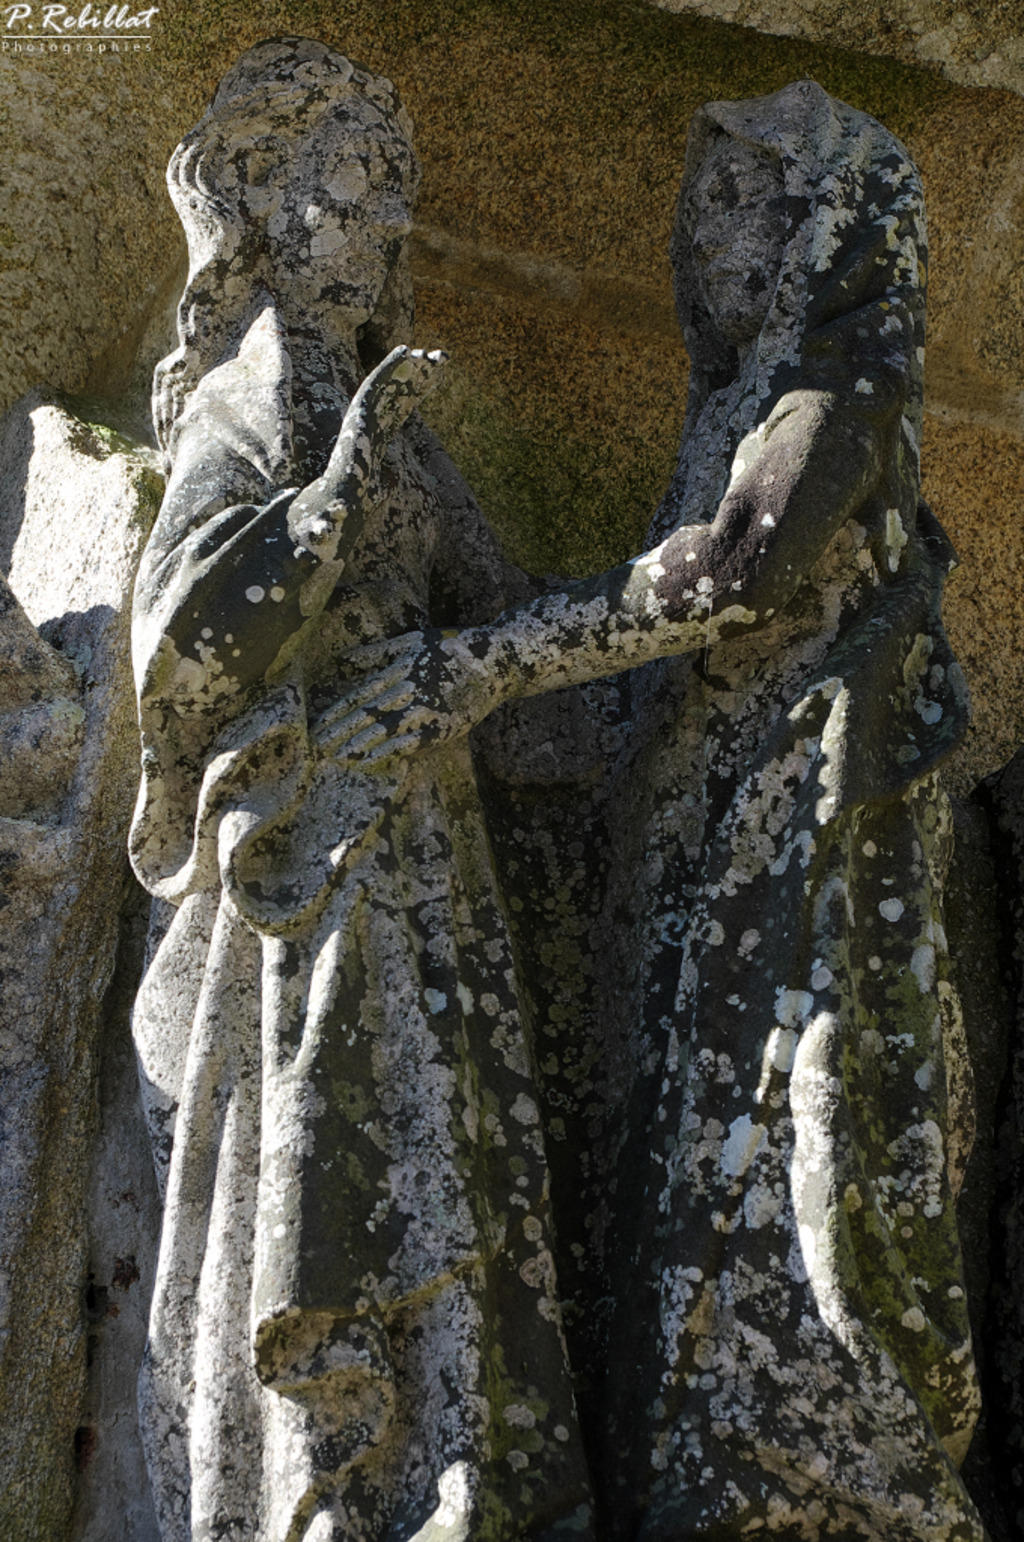 Calvary in the 16th century stone, French Heritage monument to St jean trolimon.